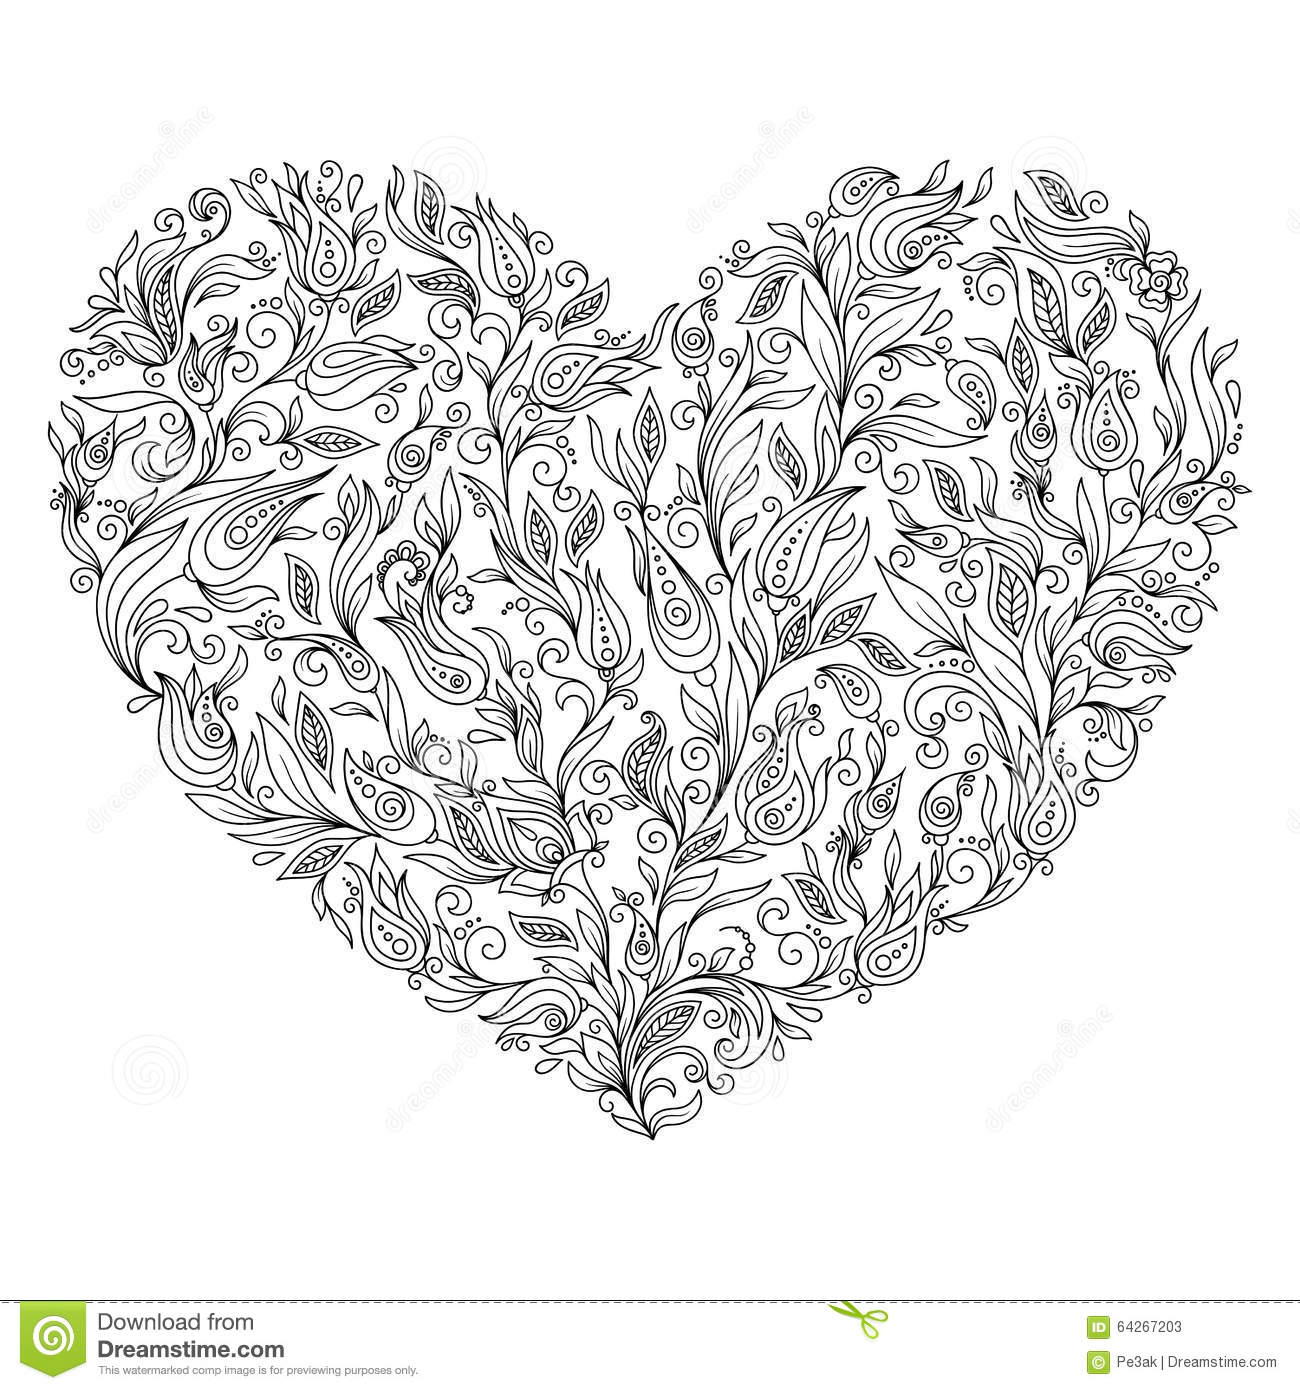 Heart Shaped Flower Coloring Page Coloringcom Sketch